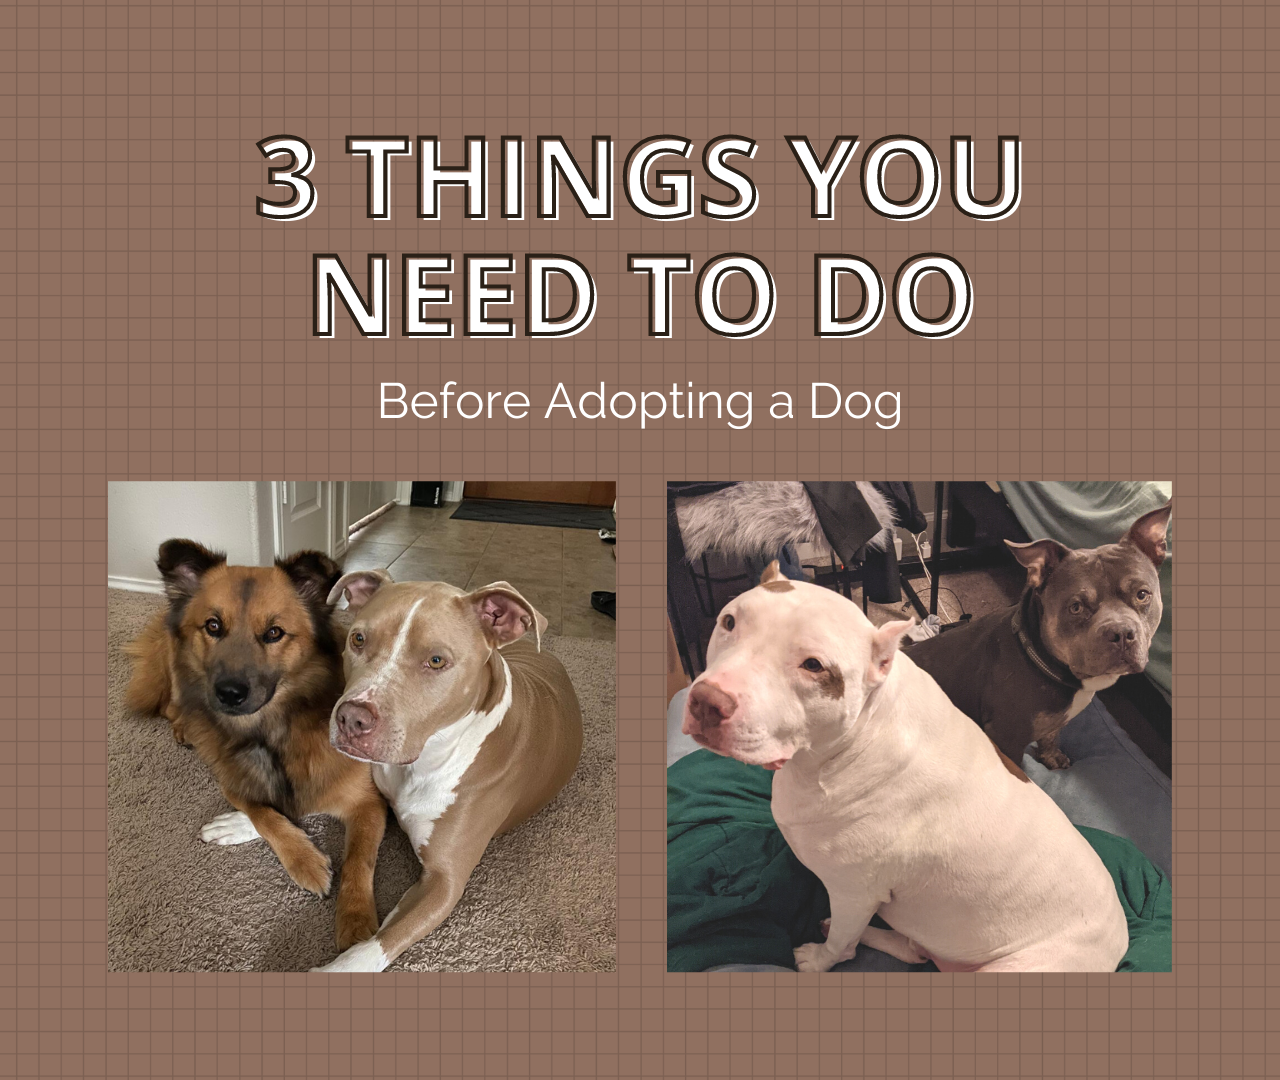 3 Things You Need to Do Before Adopting a Dog